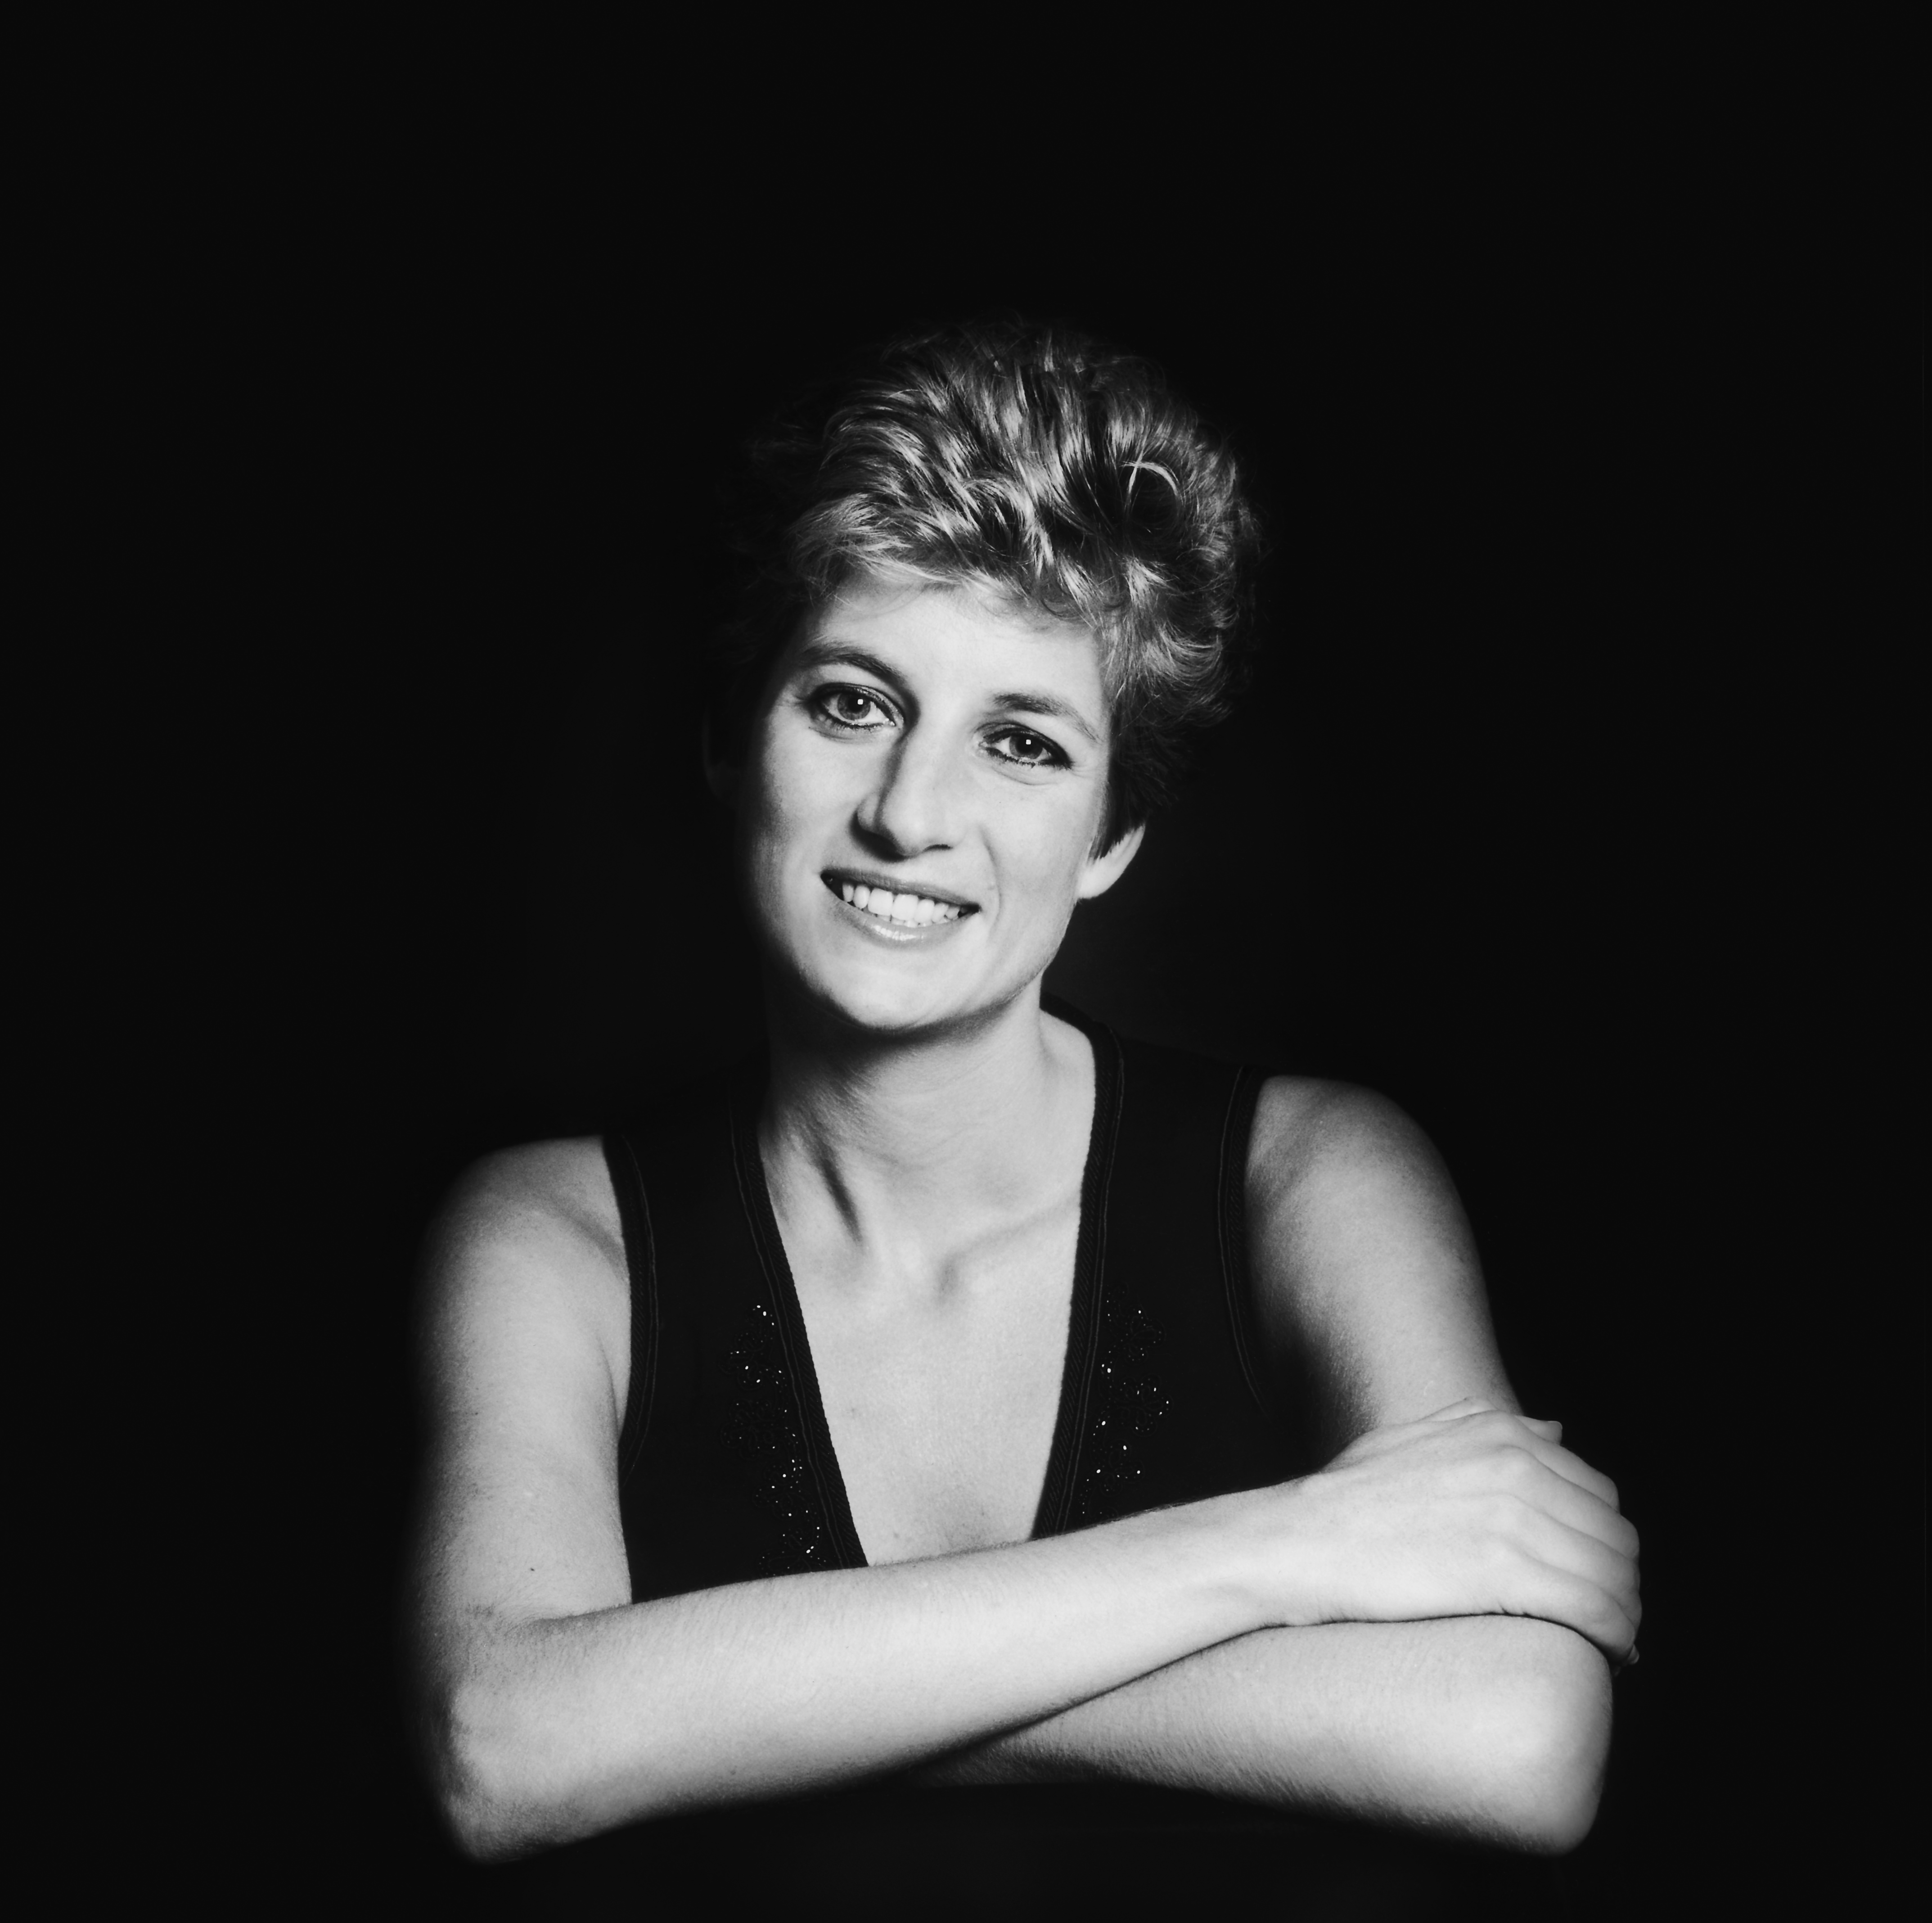 A black and white image of Princess Diana